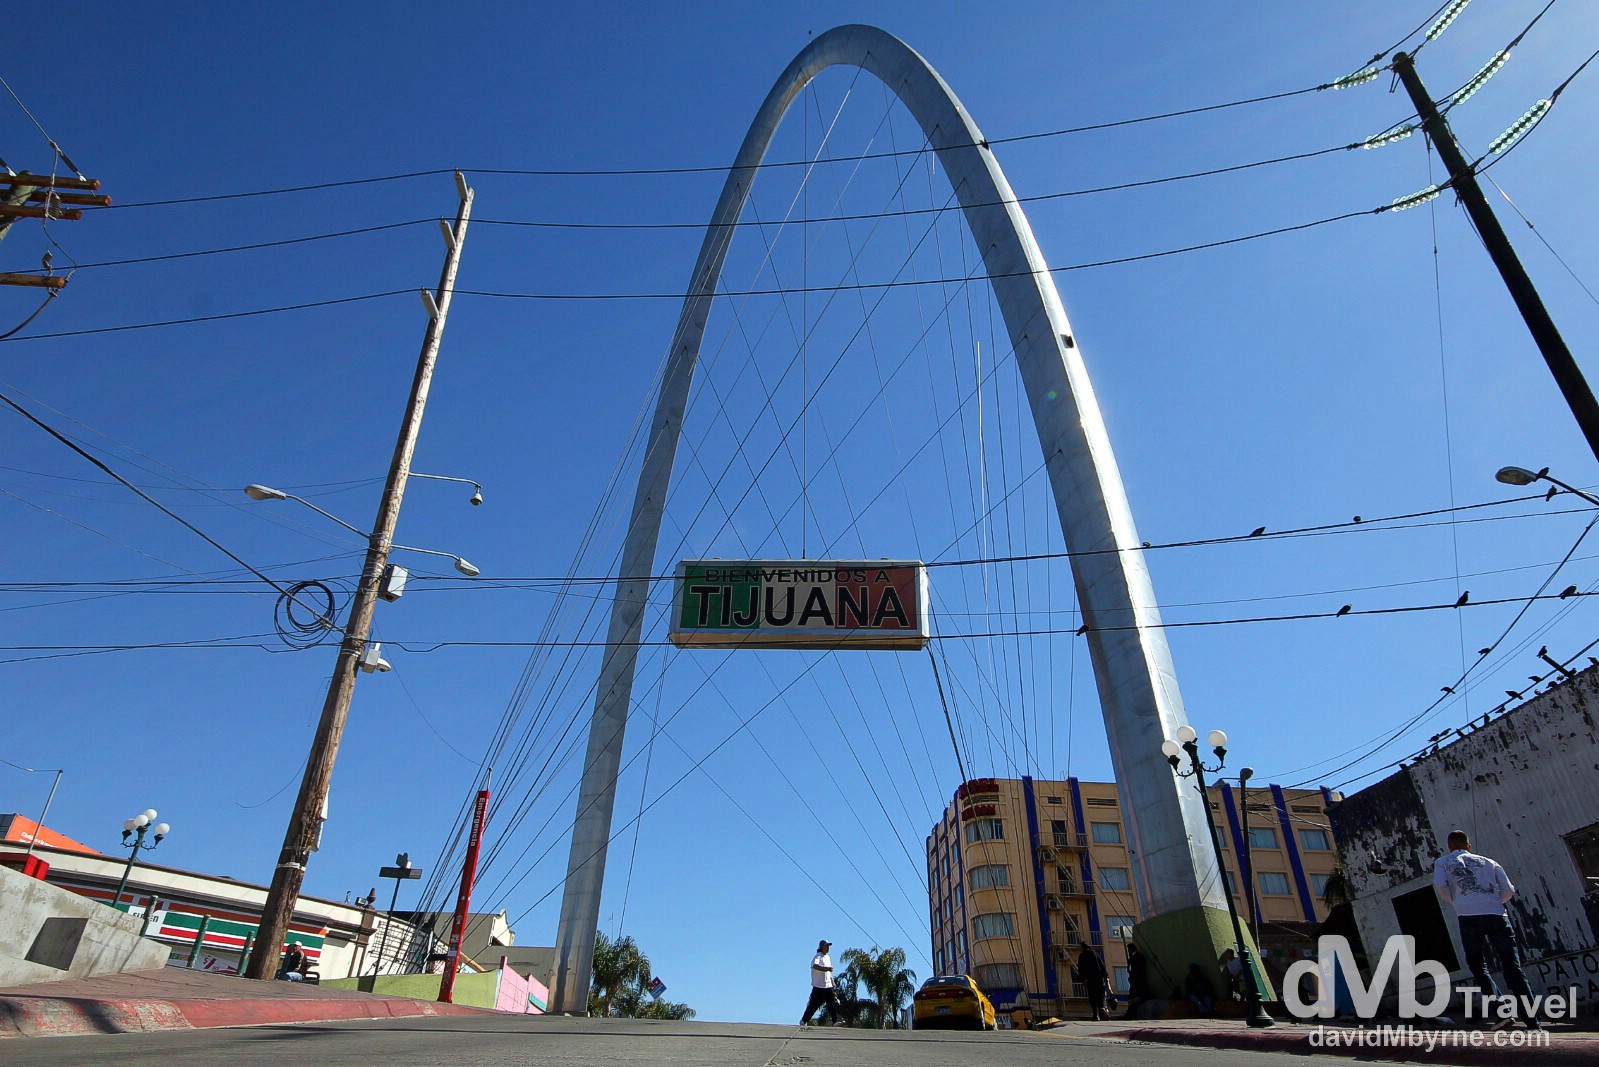 The Arch, Avenue Revolucion (La Revo), Tijuana. This is a picture of the town's arch, a massive landmark at the end of La Revo, Tijuana's touristy area. I got talking to a destitute US expatriate on the street who told me the arch was initially designed to hold a clock but seemingly the budget wouldn't stretch to a clock when, if you'll pardon the pun, the time came. No credible sources were on hand to verify this titbit of information but I'll run with it anyway. Tijuana, Mexico. April 18th 2013.